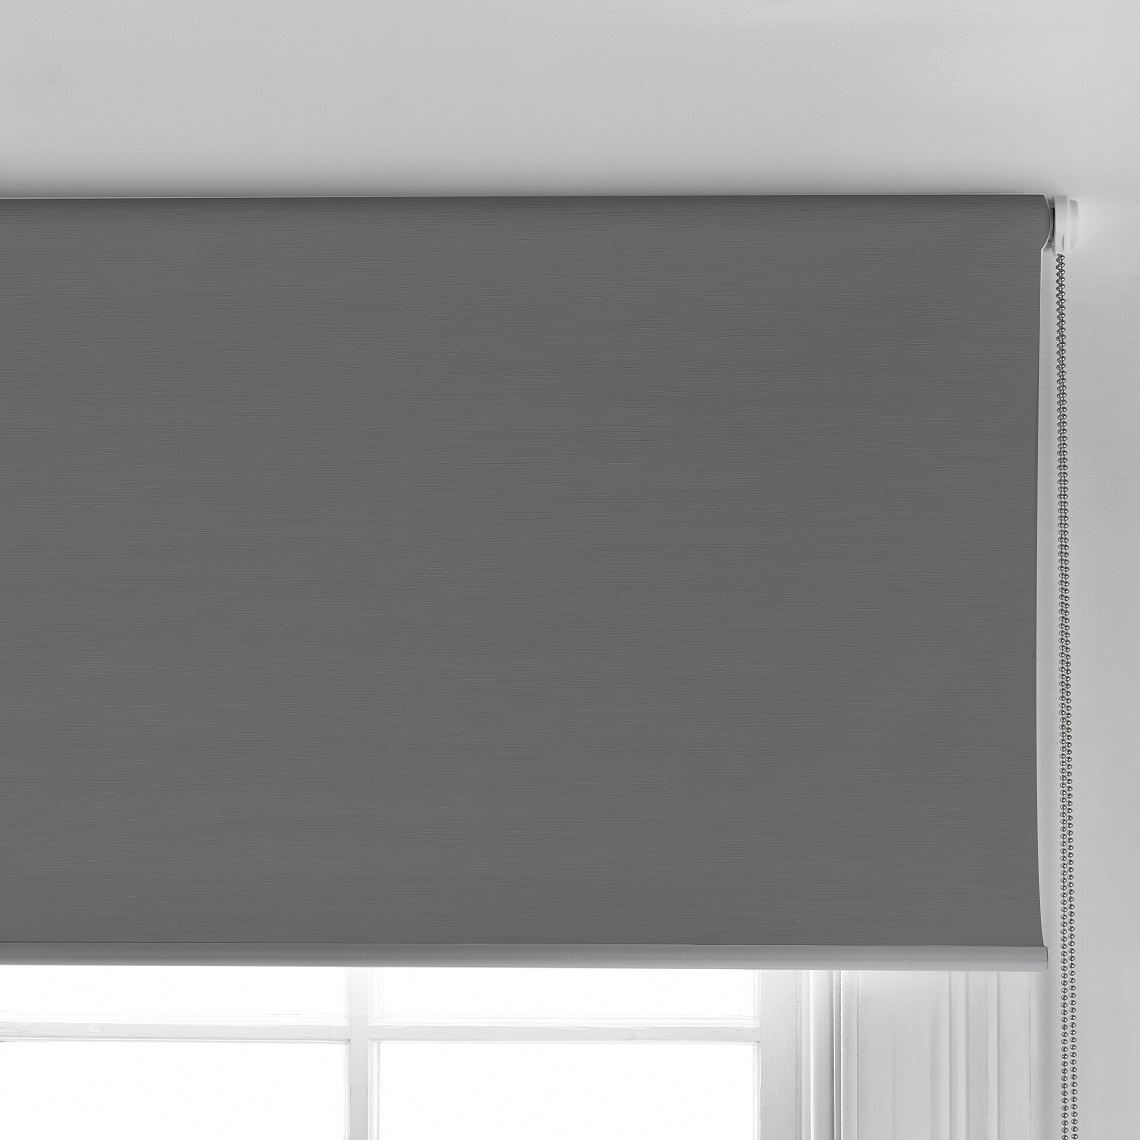 Ashcroft Blockout Roller Blind Size W 60cm x D 0cm x H 210cm in Charcoal 100% Polyester Freedom by Freedom, a Curtains for sale on Style Sourcebook